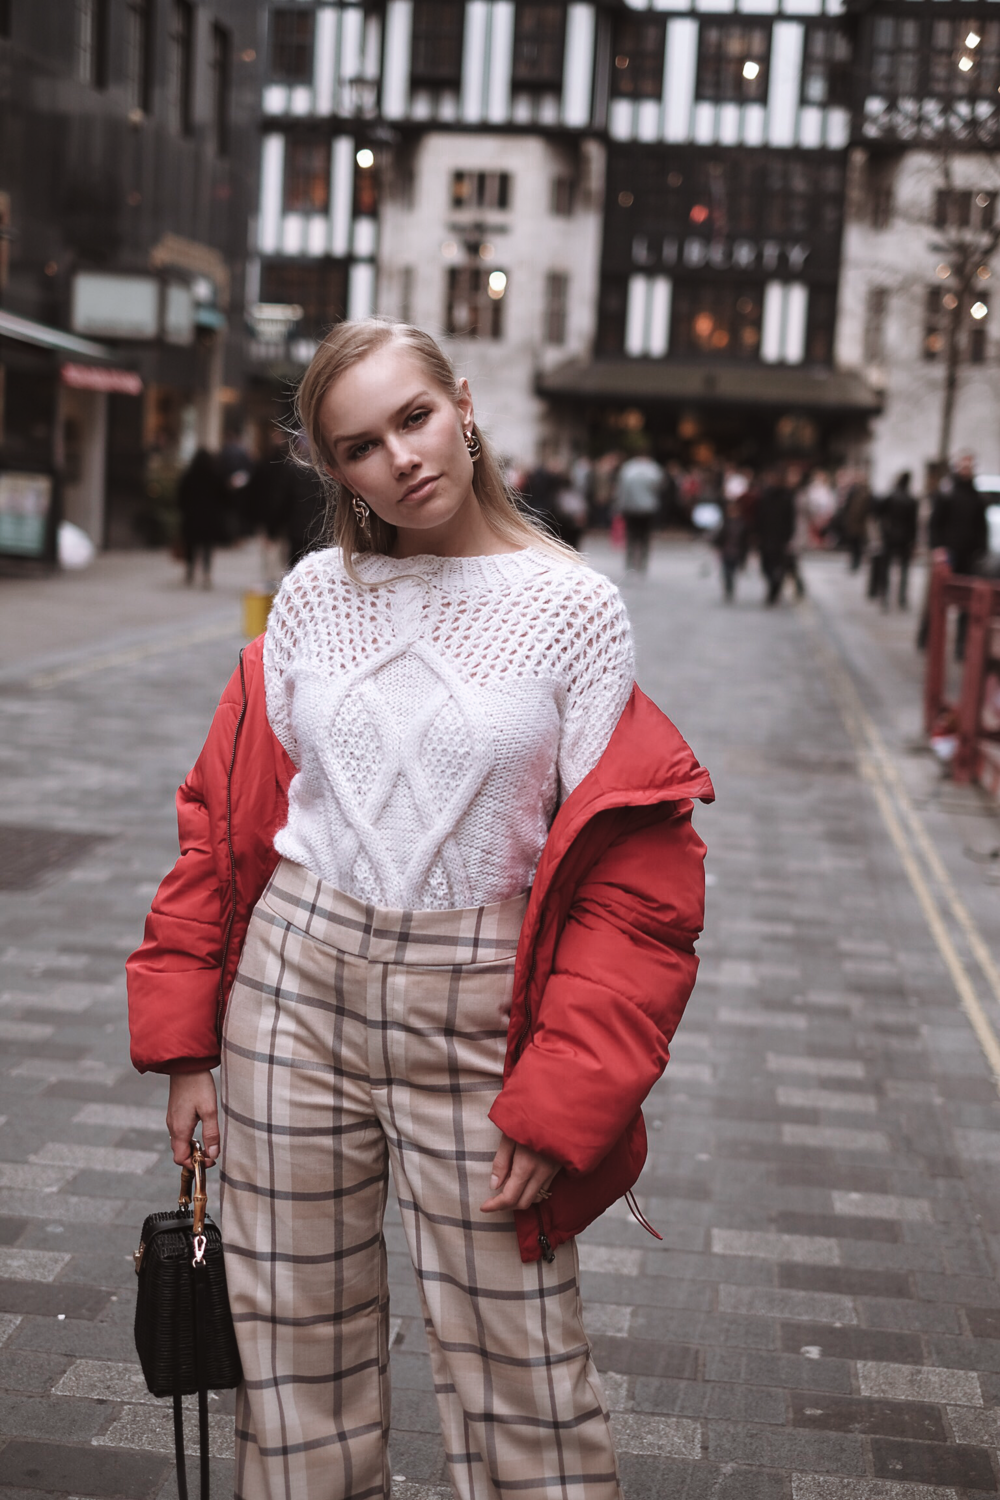 Sara is wearing:   Hand knitted wool jumper - designed by   Camilla Pihl Strikk (Knit)    Puffer Jacket - Cubus  Checkered trousers -   Lindex    Earrings and handbag -   Zara    Shoes -     Fila